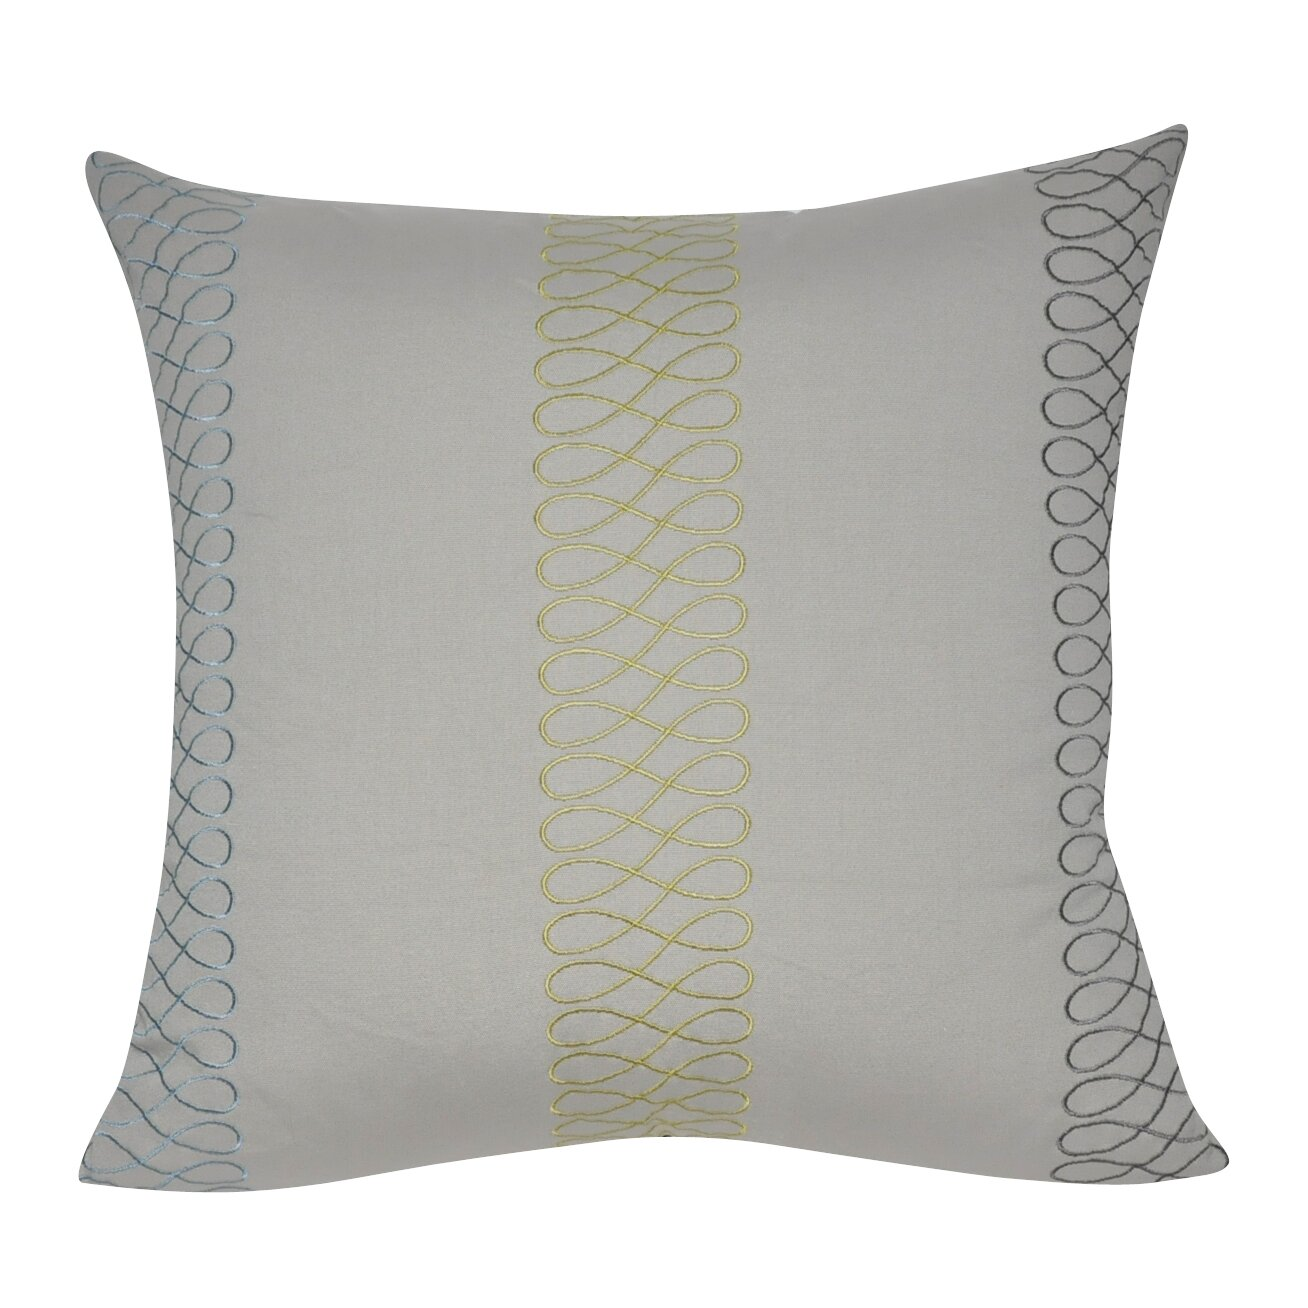 Decorative Pillow Wayfair : Loom and Mill Stripe Decorative II Throw Pillow & Reviews Wayfair